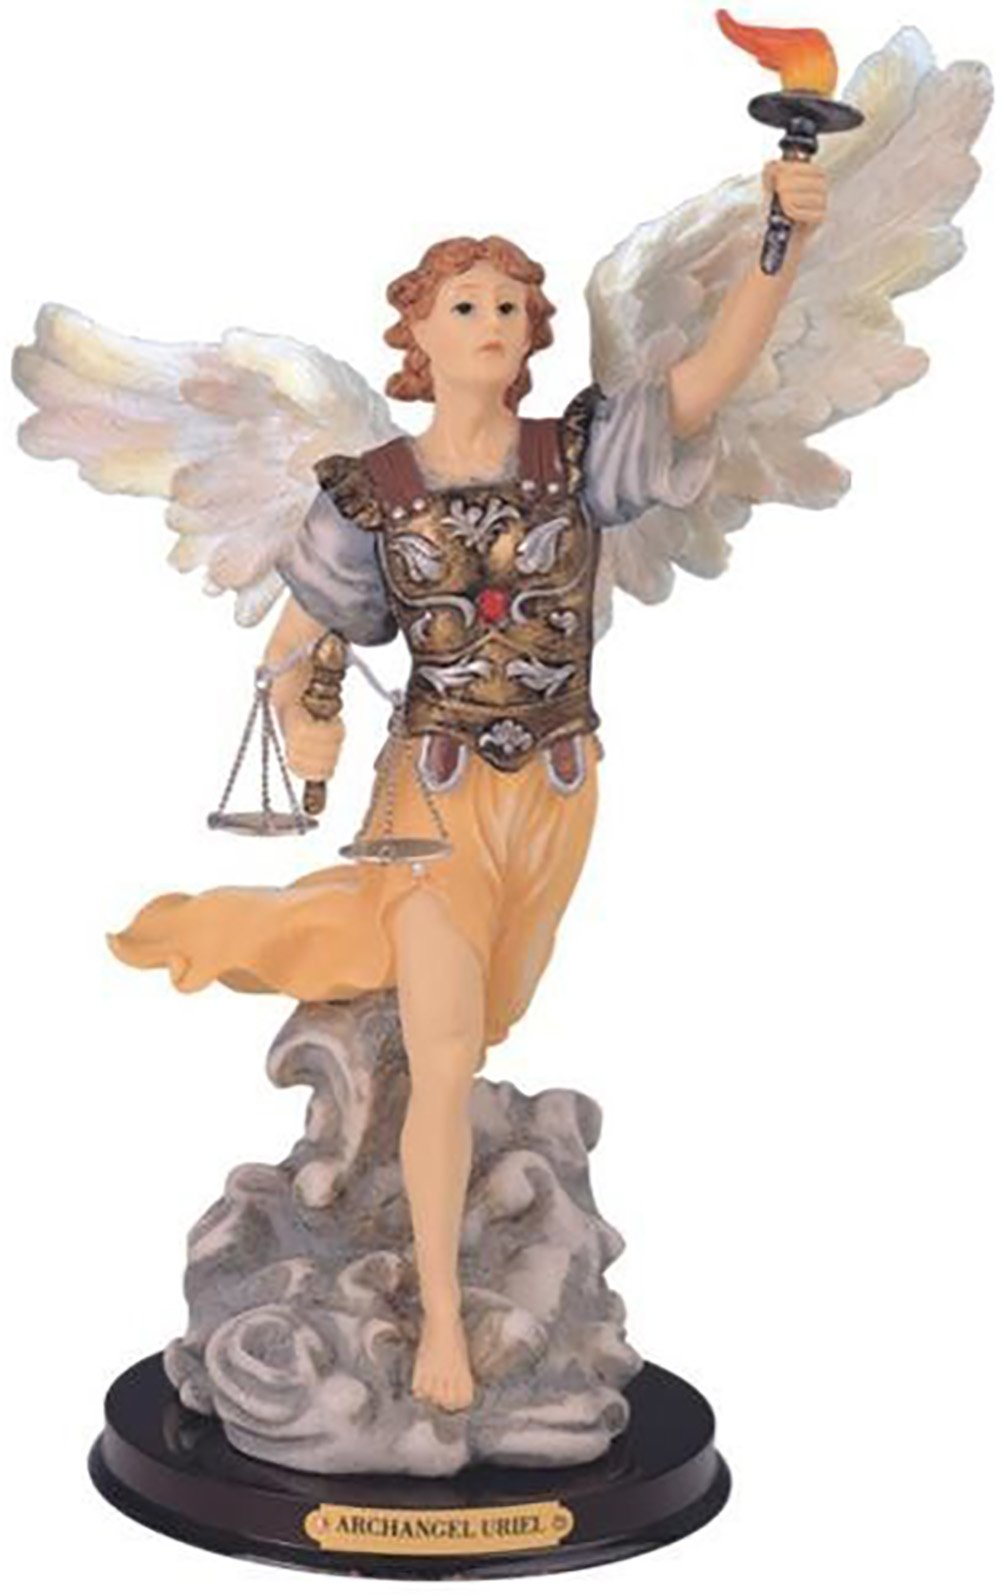 "Custom & Unique {12'' Inch} 1 Single Large, Home & Garden ""Standing"" Figurine Decoration Made of Resin w/ Majestic Bold Realistic Archangel Christian Holy Uriel Style {Assorted Color} by mySimple Products"